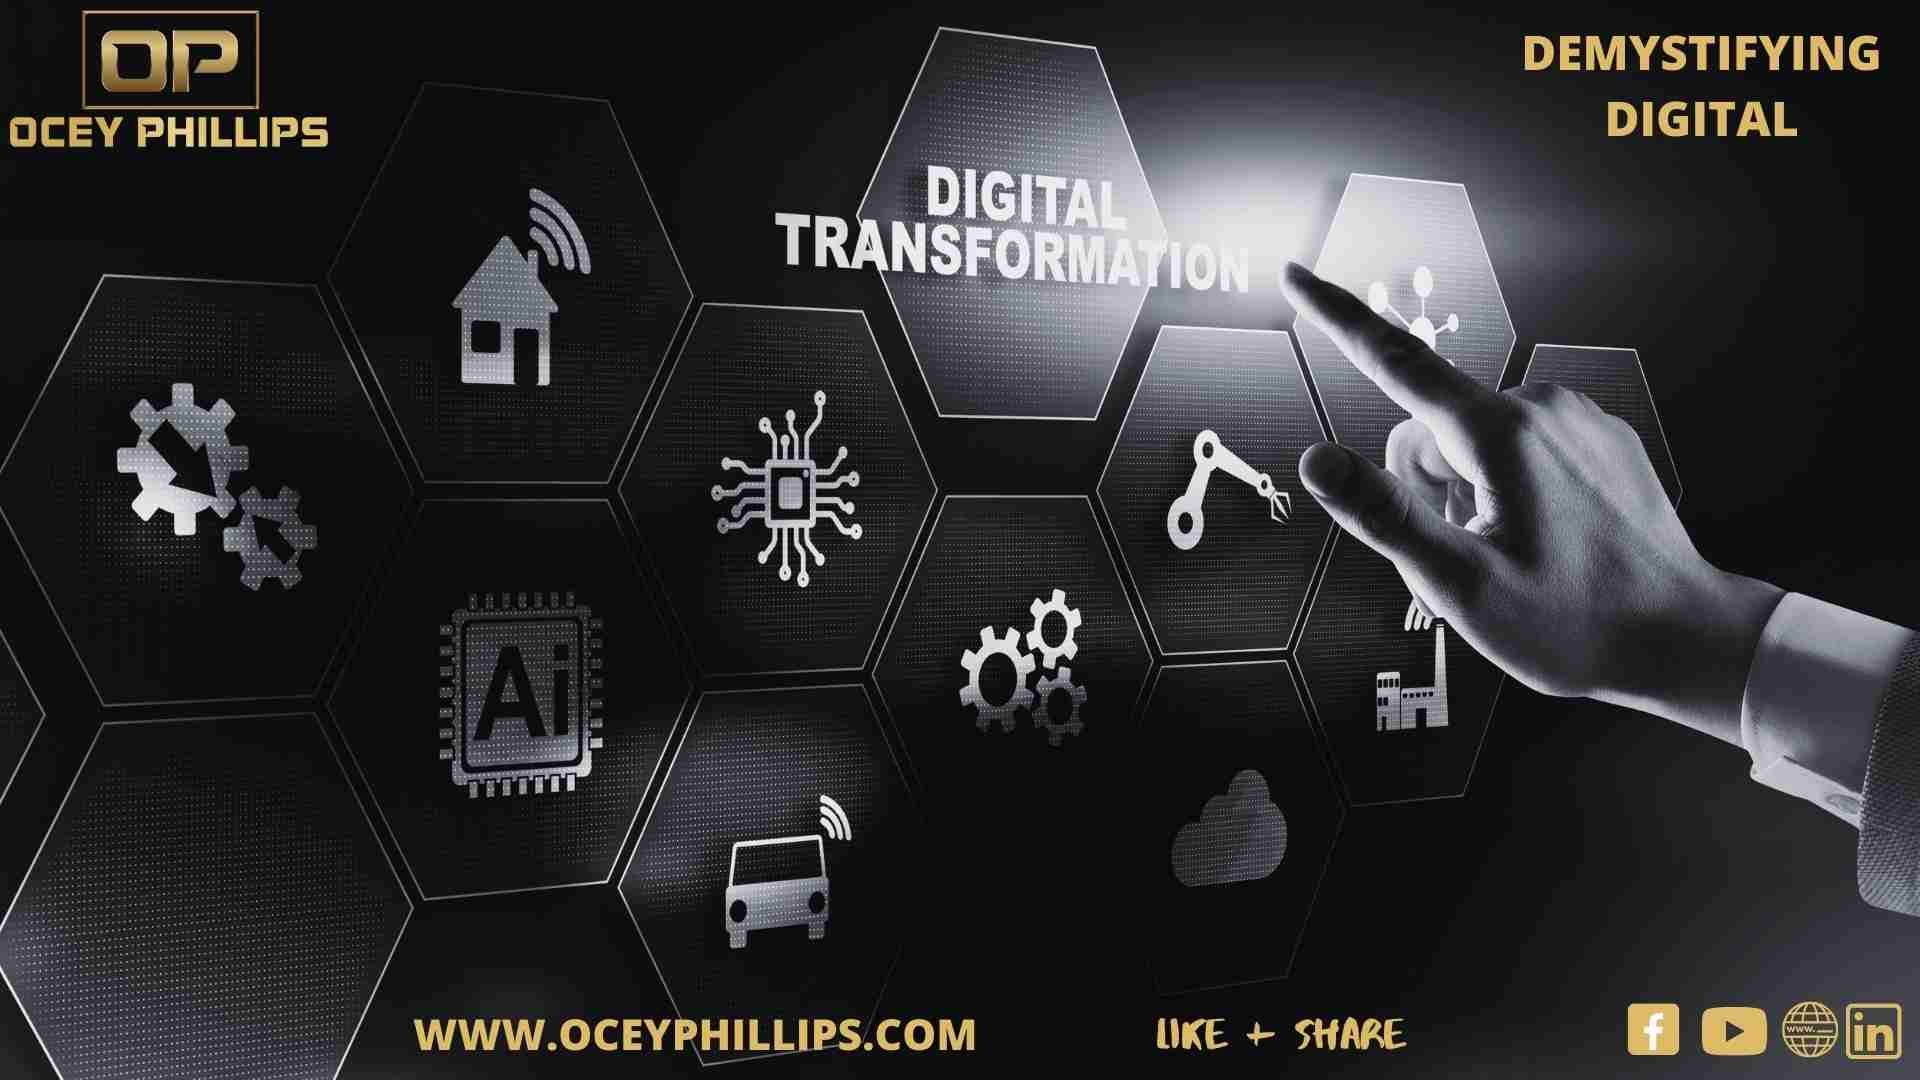 Digital transformation with ocey Phillips